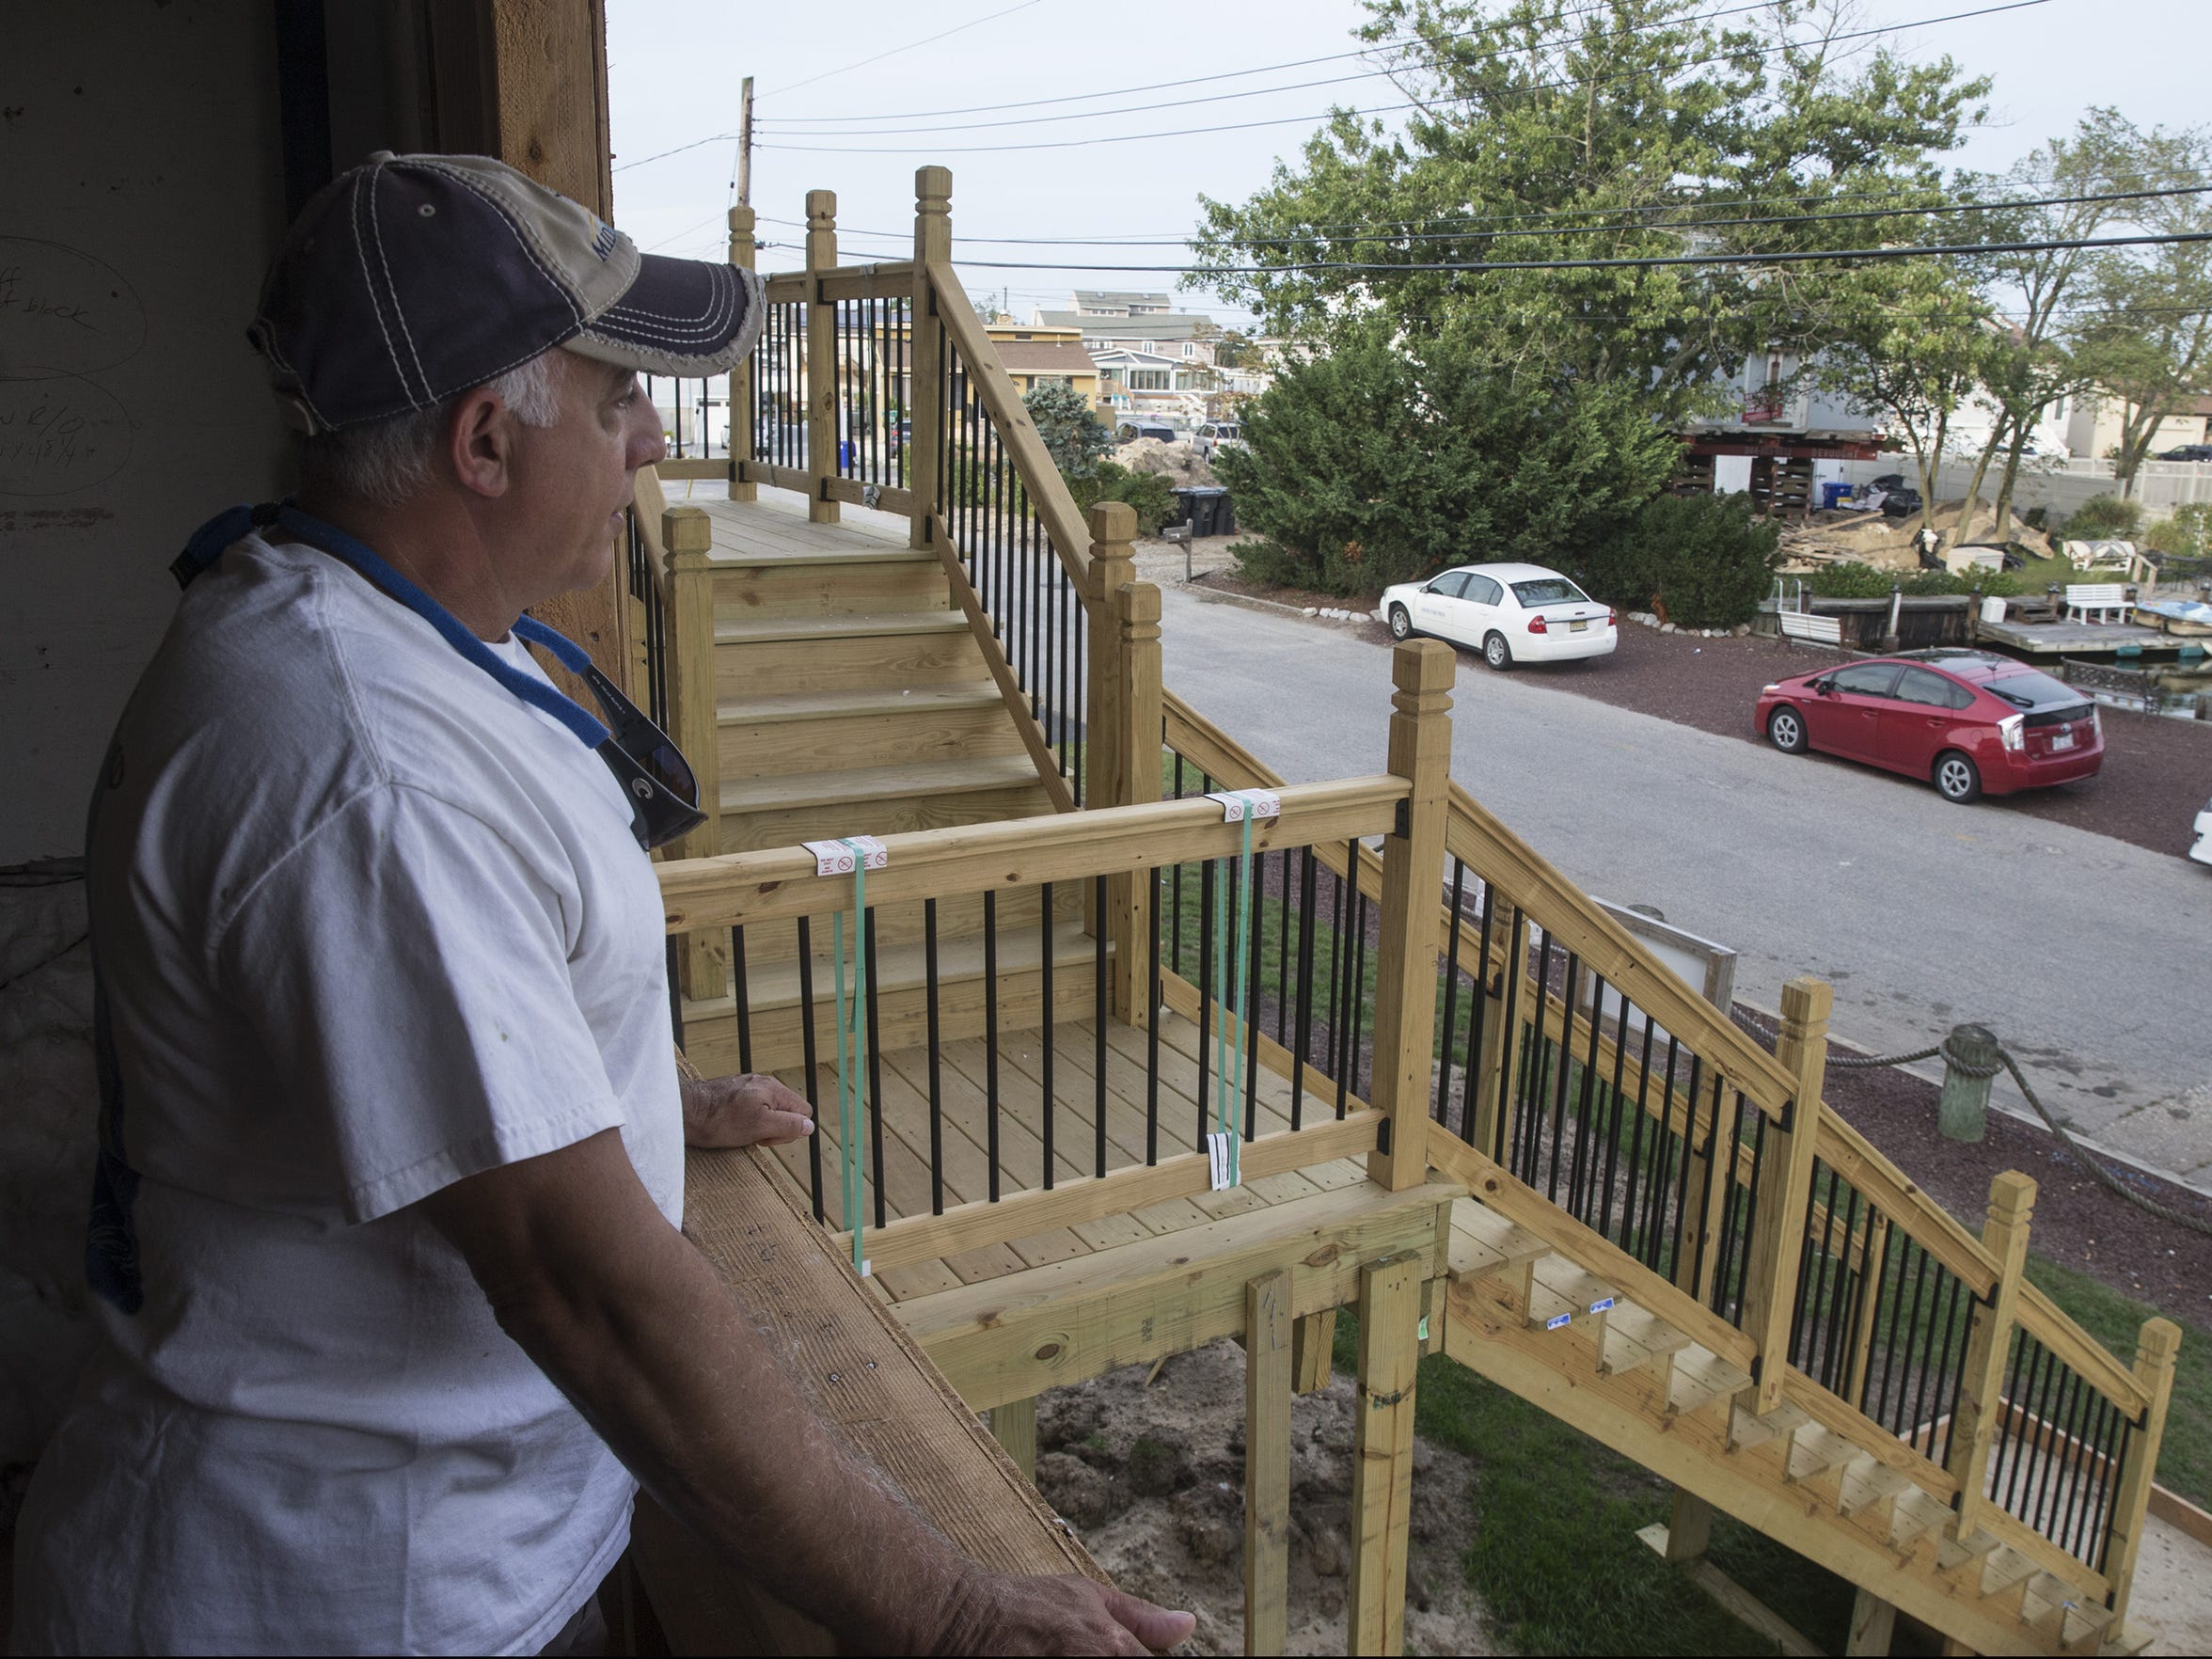 Rich Bindell and his wife Allison hired contractor Jamie L. Lawson to repair their superstorm Sandy damaged home. After taking thousands for work performed, Lawson abandoned the project. The house still remains unfinished with a new contractor hired to complete the job.  Toms River, NJ Thursday, September 21, 2017 @dhoodhood